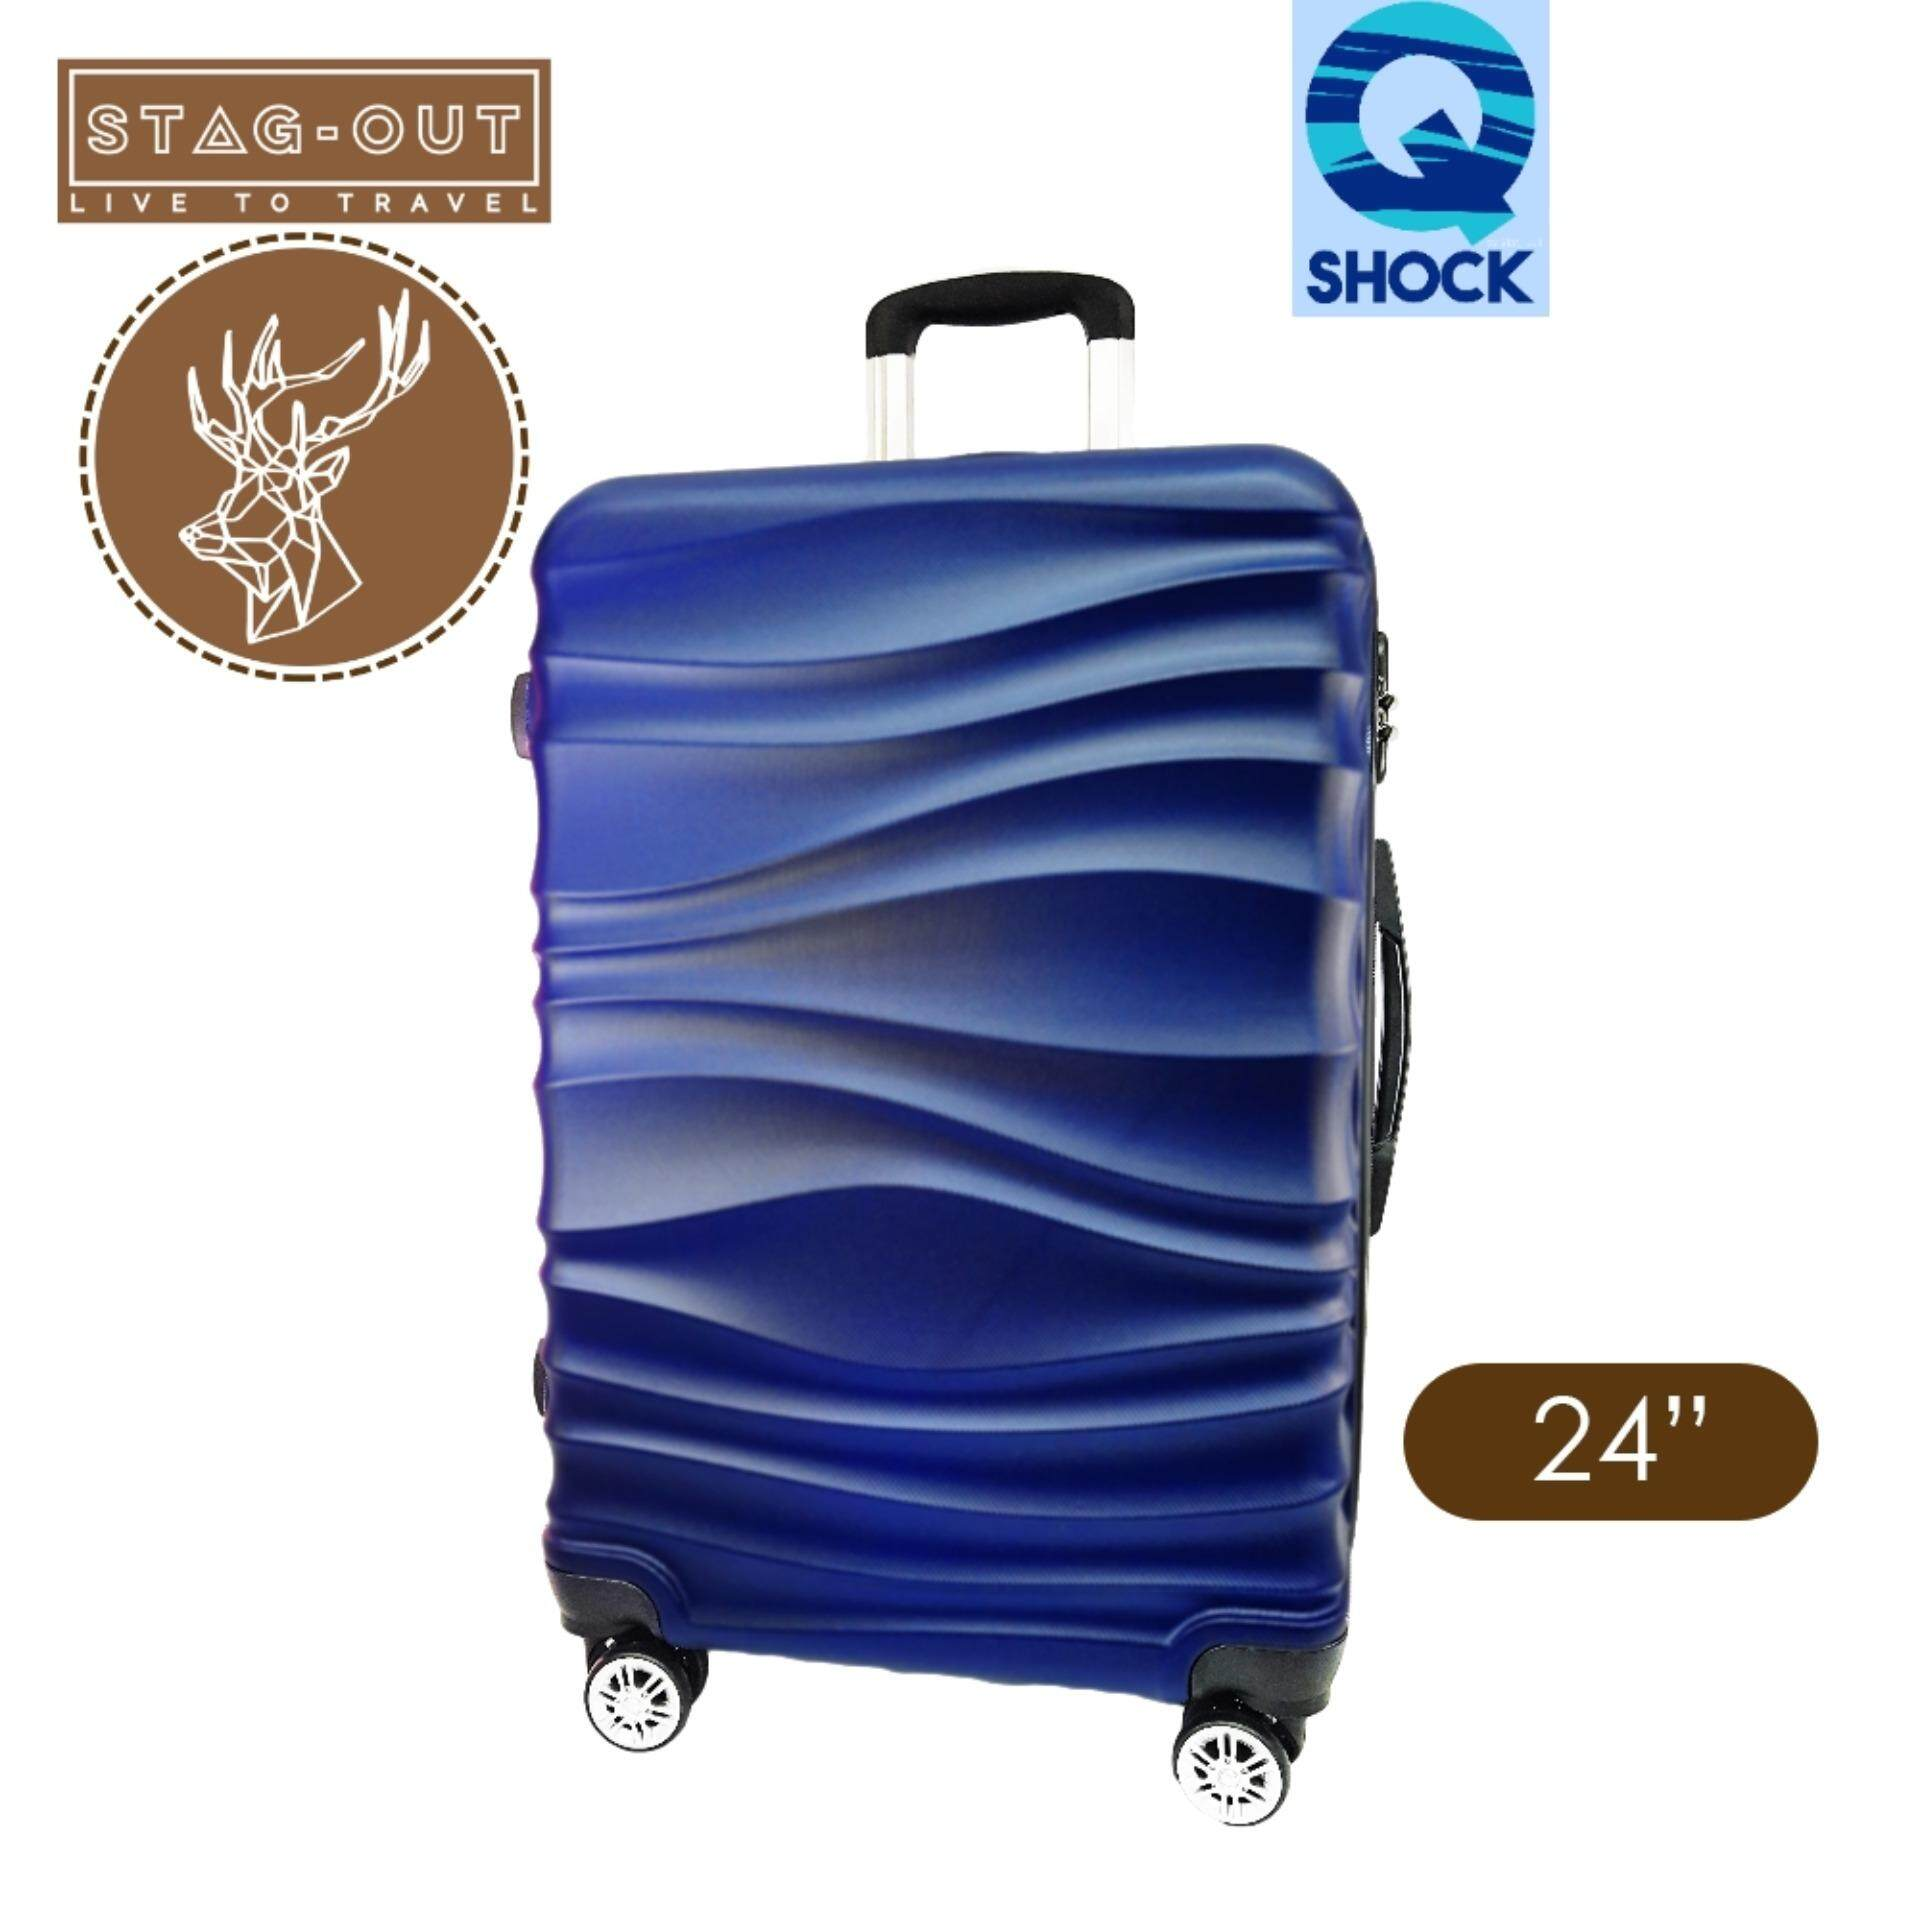 [stag-Out] Q-Shock 24lighweight Premium Abs Hardcase Travel Check-In Luggage Bag Suitcase (navy Blue) By Kingsman Online Store.